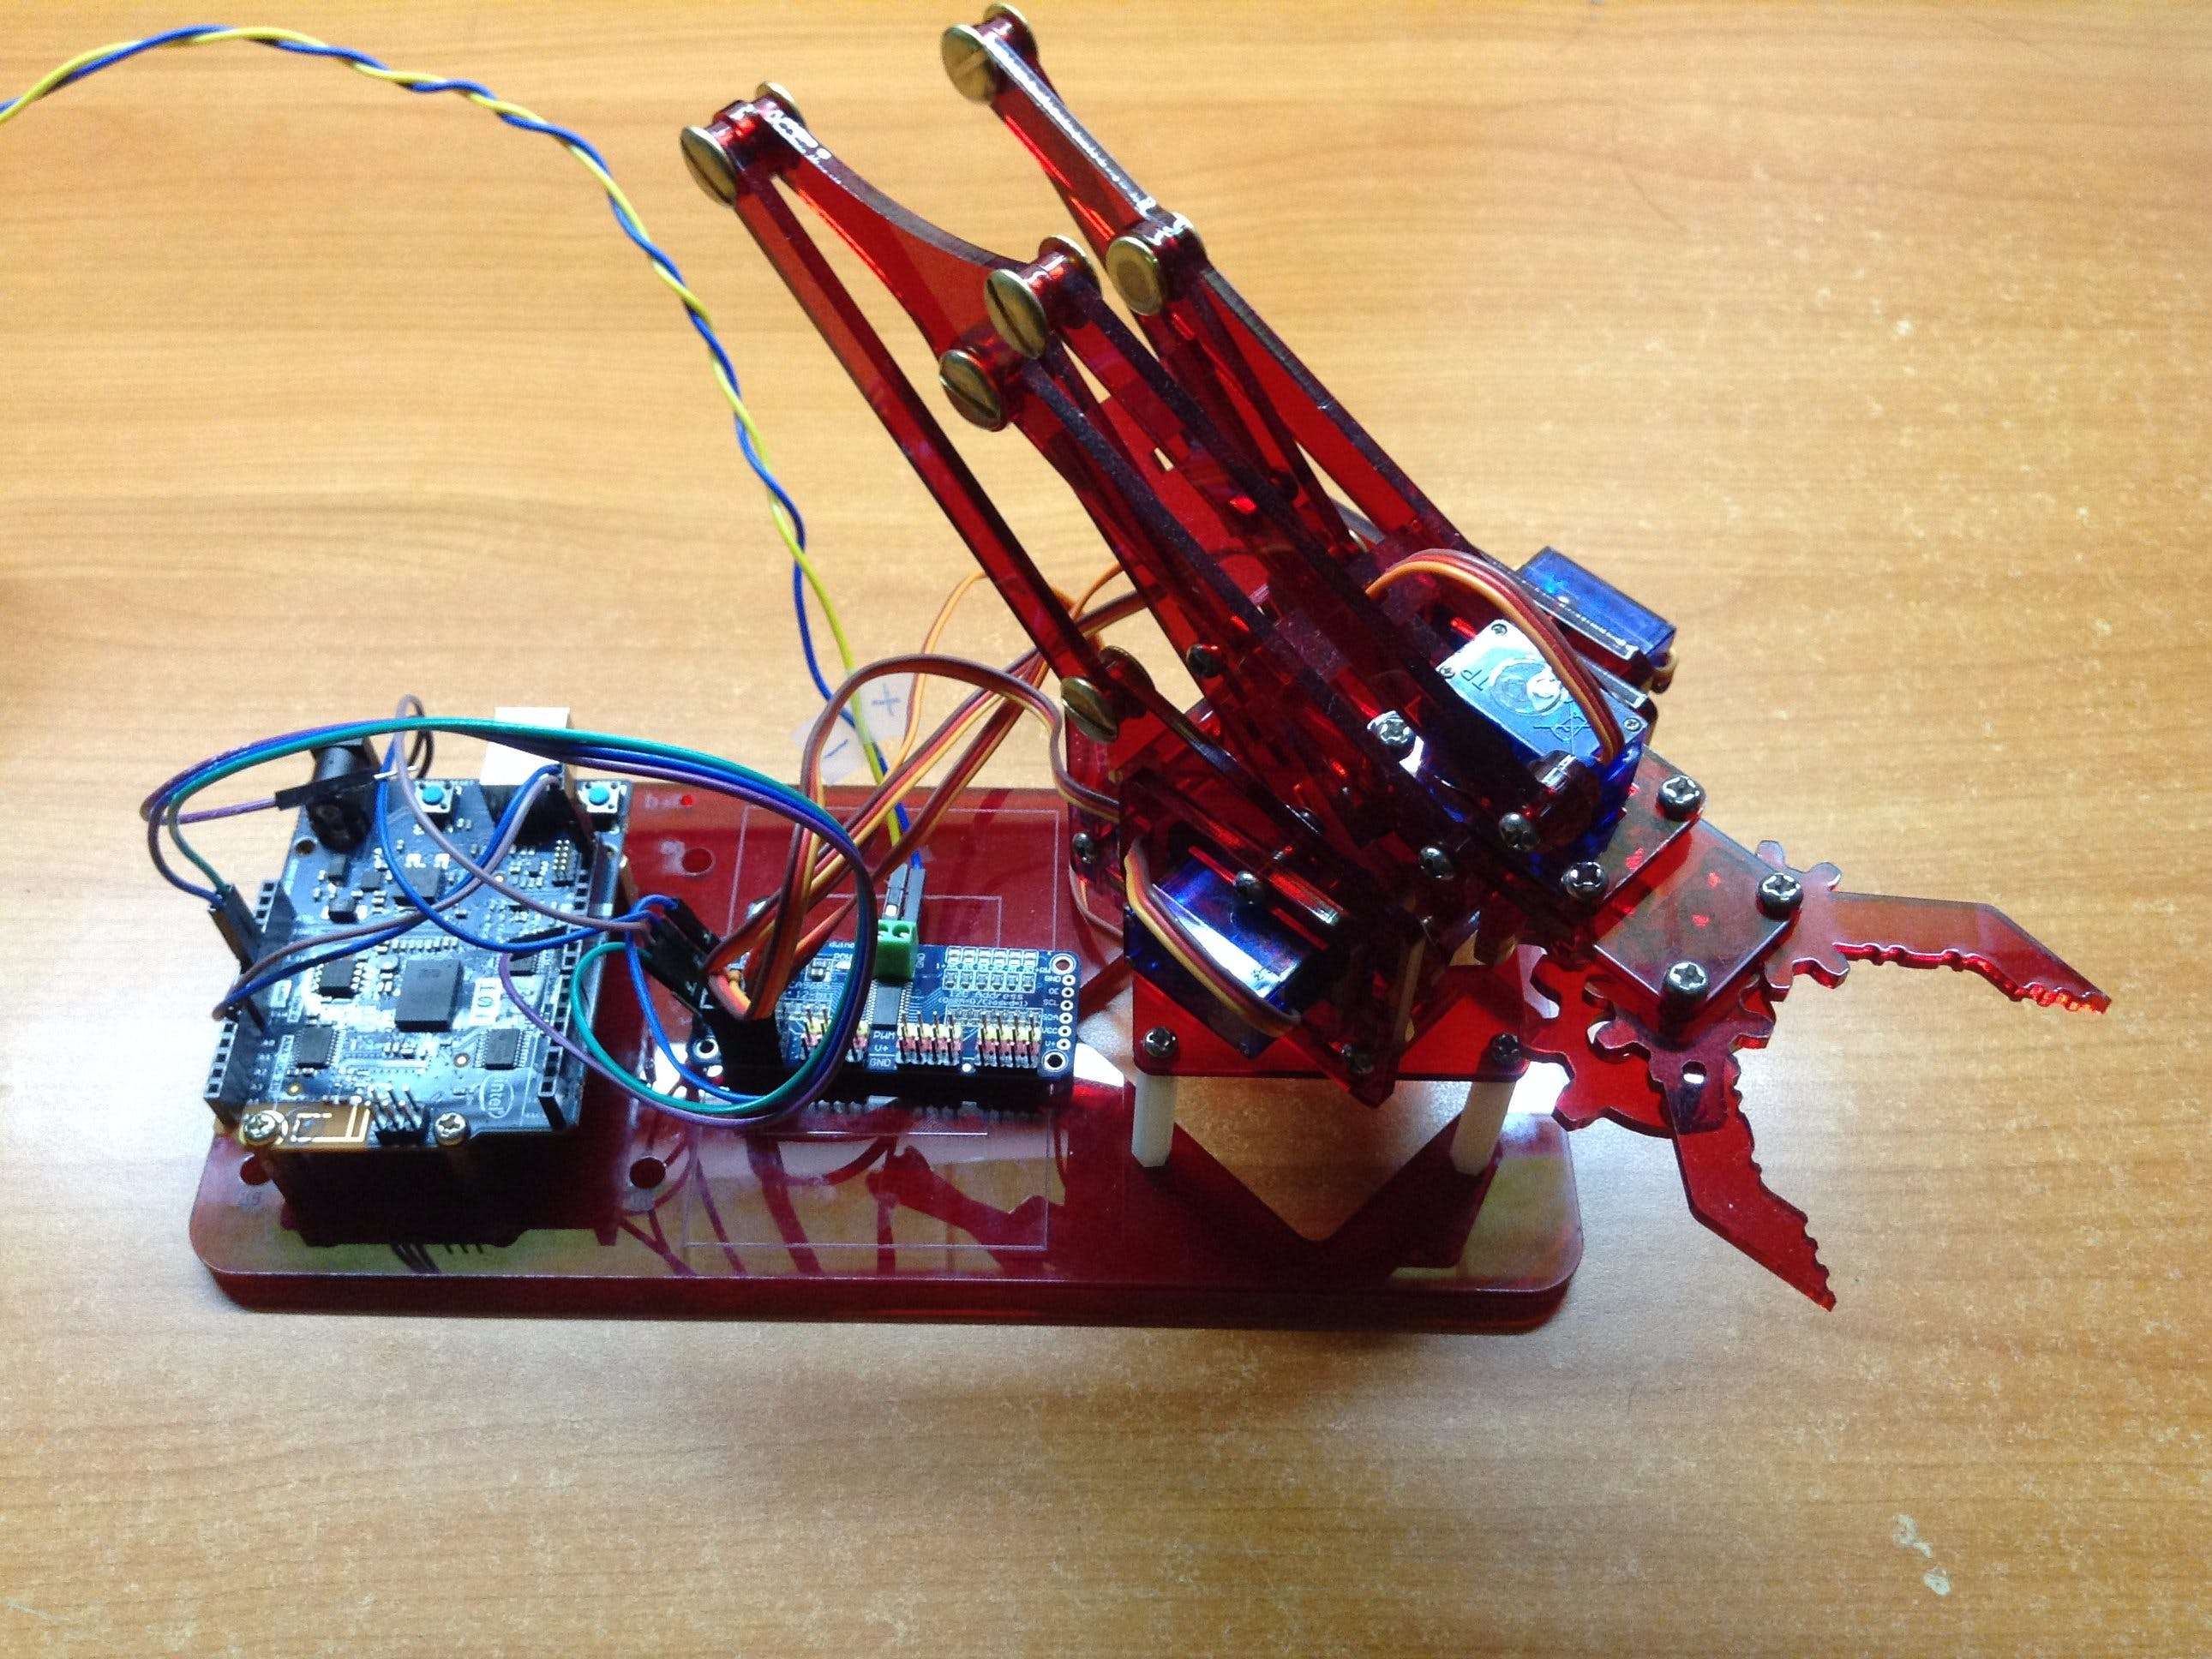 Control Mearm with Arduino 101 and Android Phone